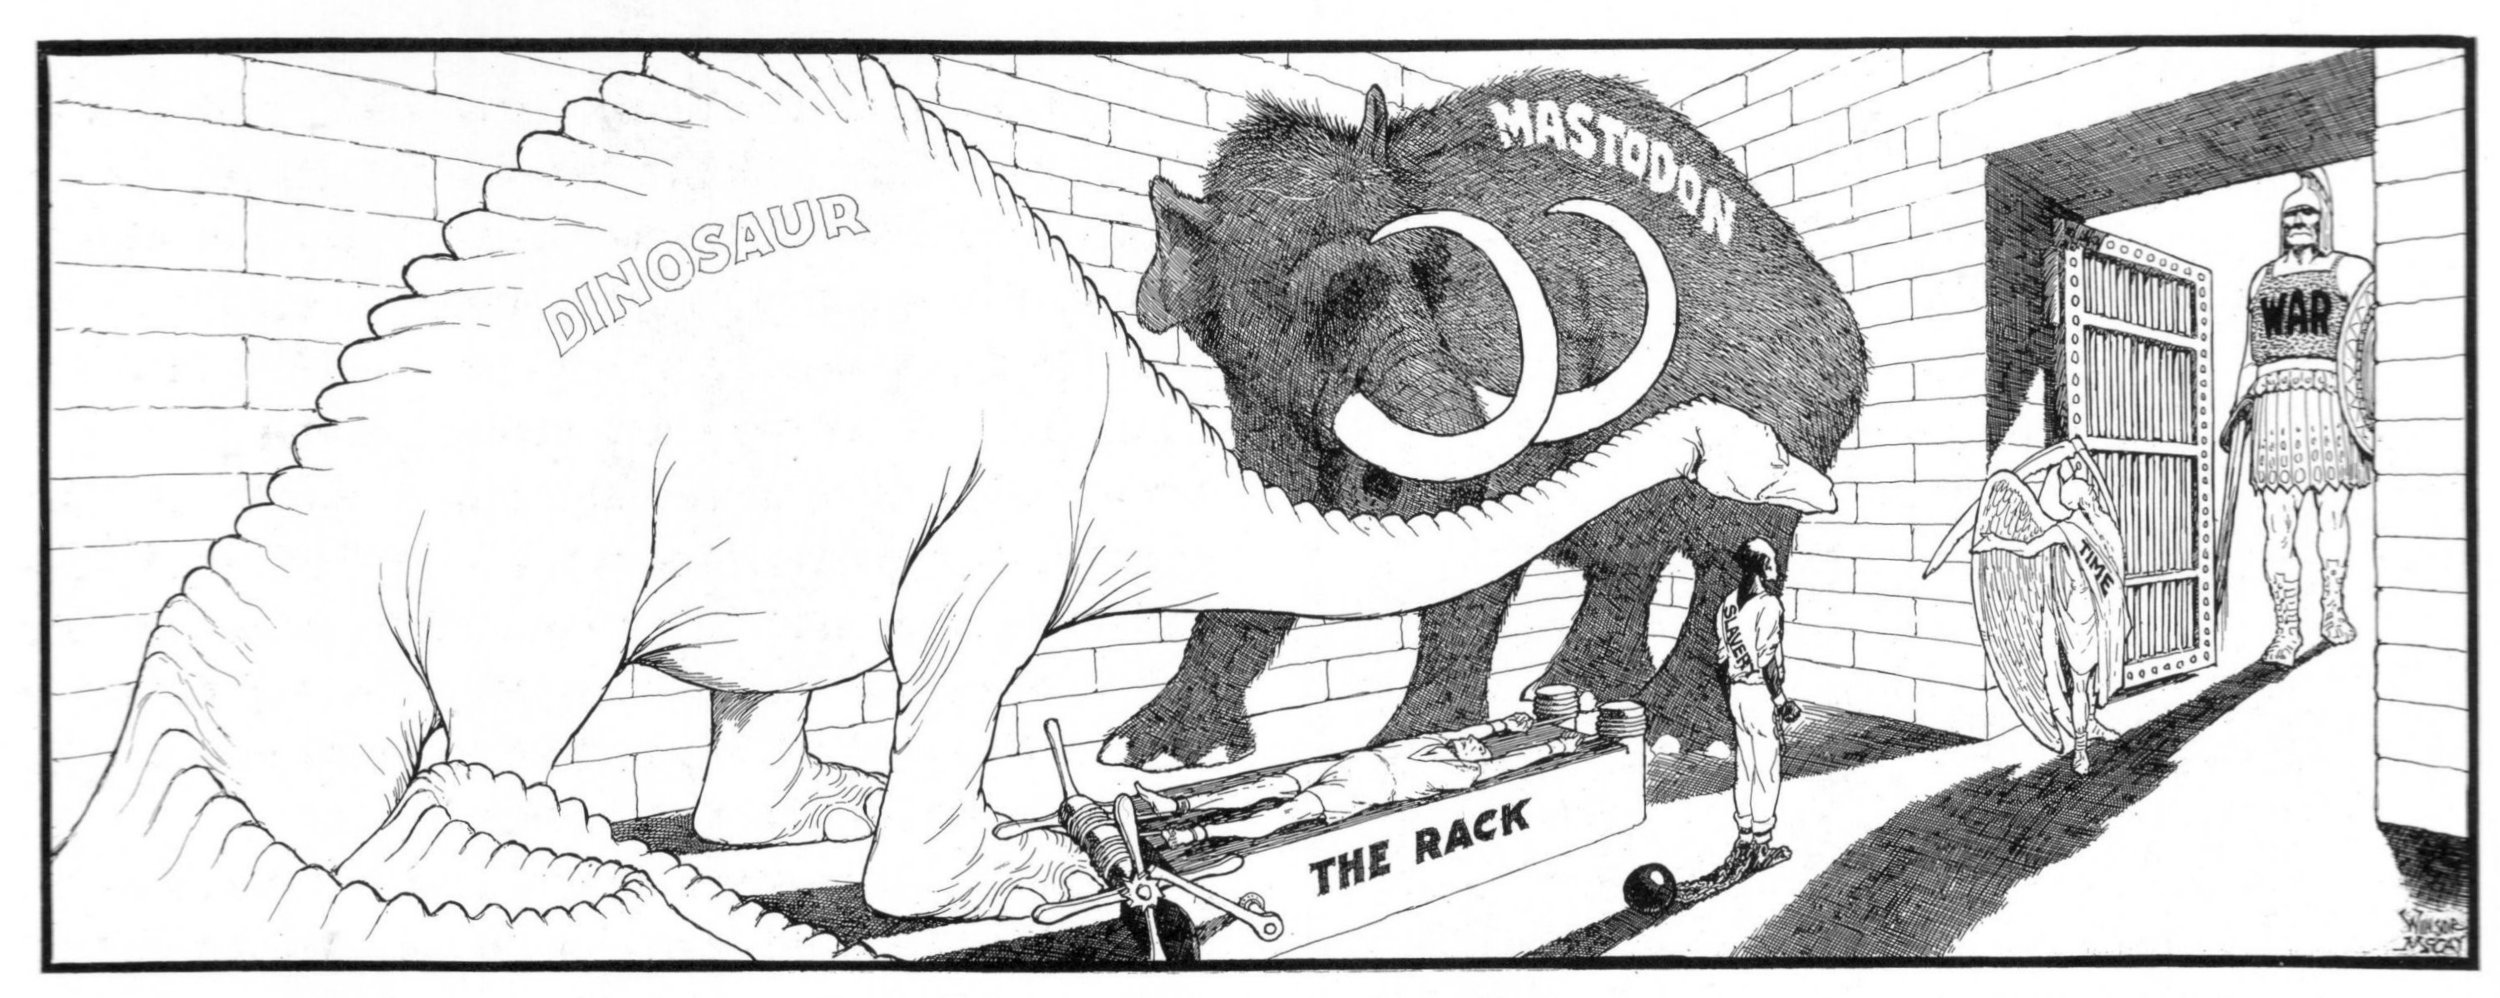 Figure 1.  Here,   famed cartoonist Winsor McCay depicts the 'Dinosaur' alongside other outdated animals, objects, and institutions supposedly swept away by the progress of 'Time', including 'The Rack' and 'Slavery'. Winsor McCay, 'Oblivion's Cave—Step Right In, Please', Sunday American, 19 March 1922.